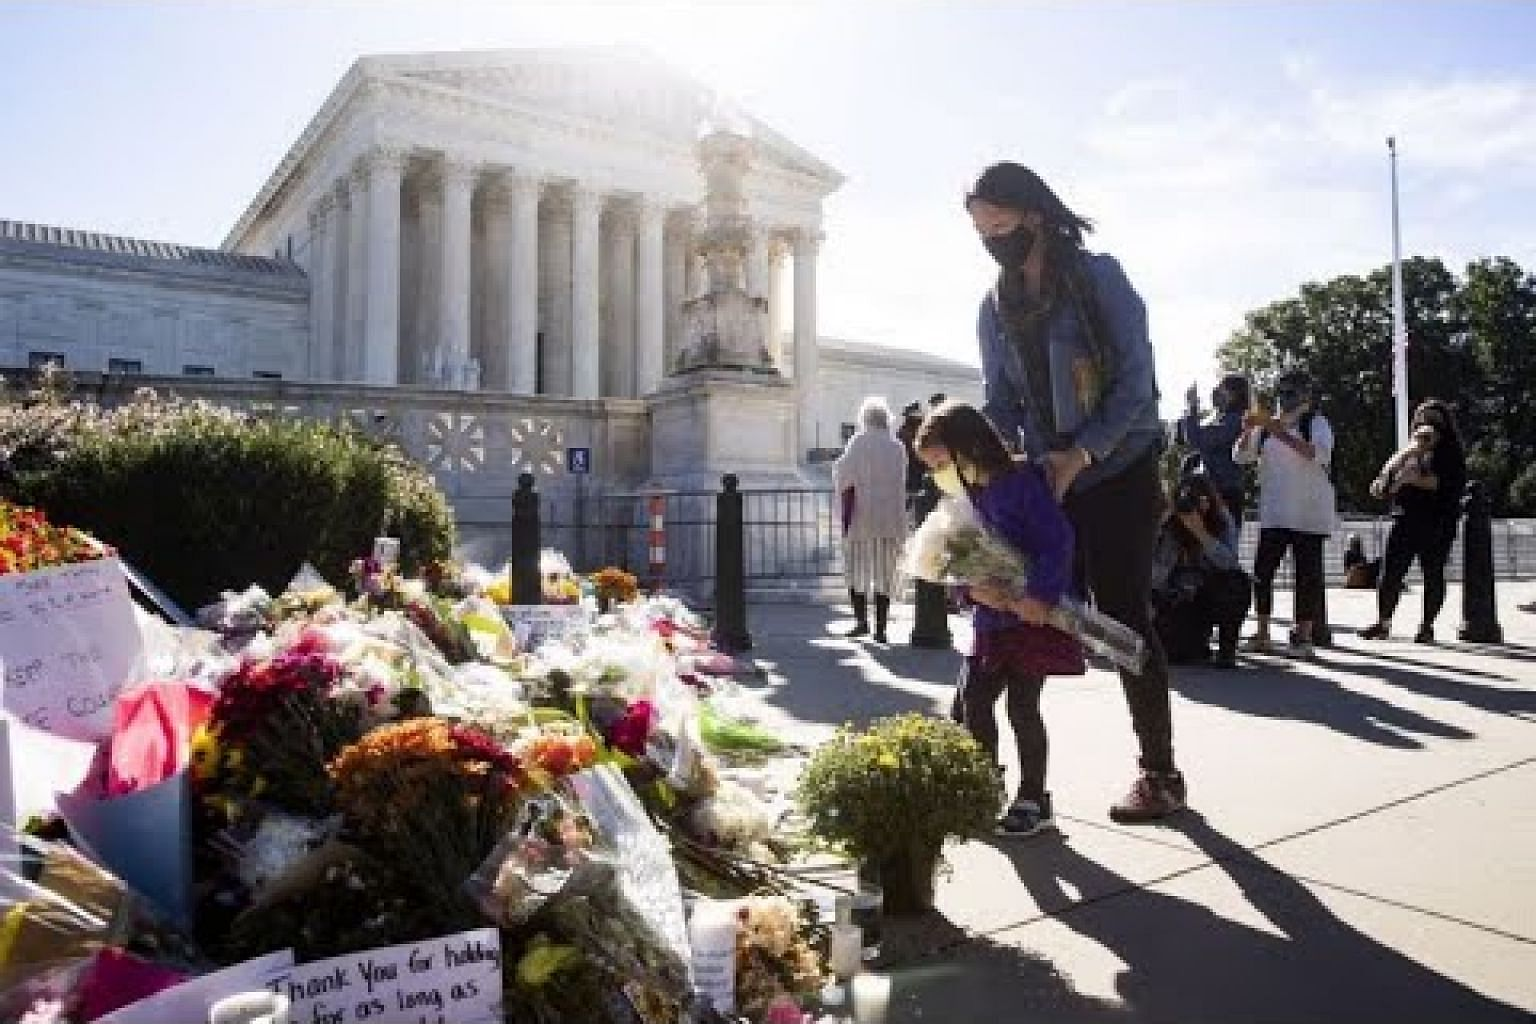 Crowds at Supreme Court mourn loss of Ruth Bader Ginsburg